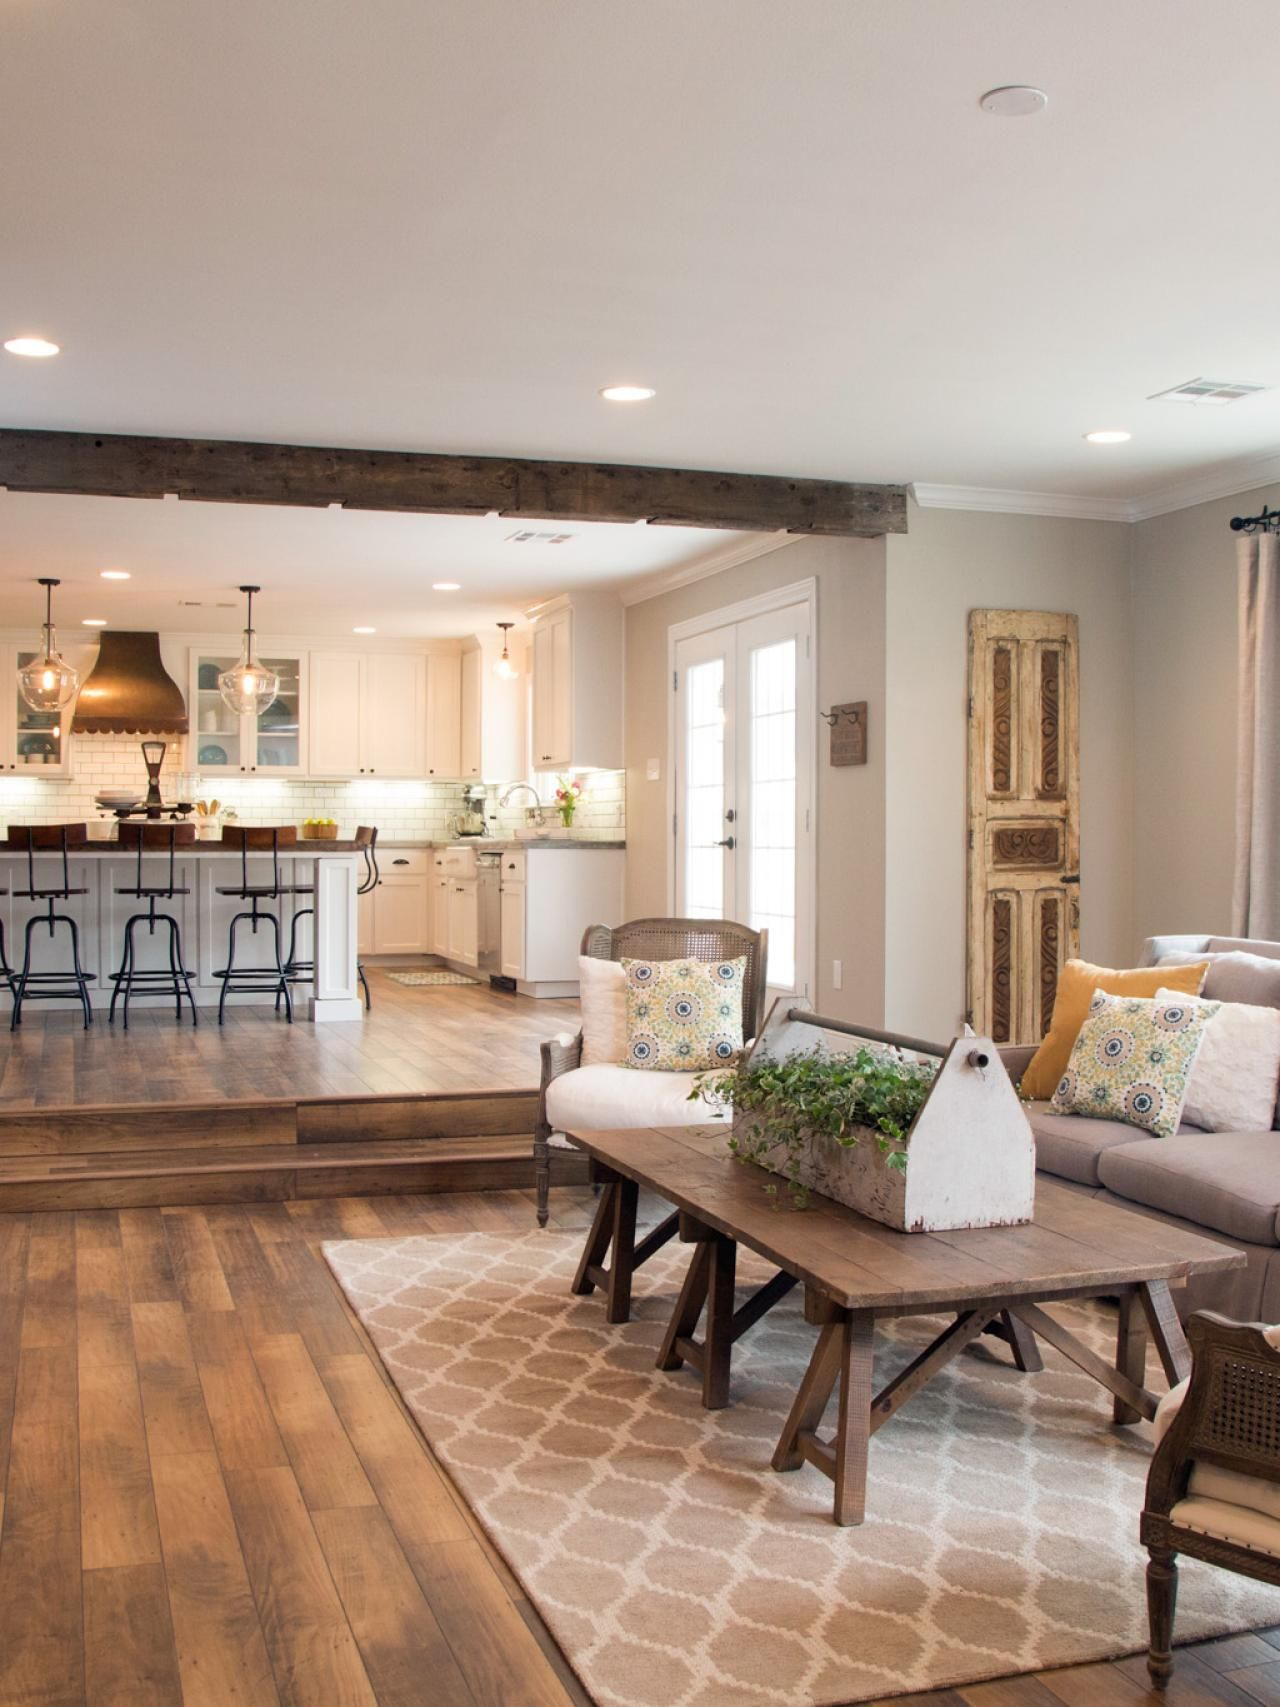 Pin By Diane Jensen On Living Room Pinterest Living Rooms Joanna Gaines And Fixer Upper Hgtv